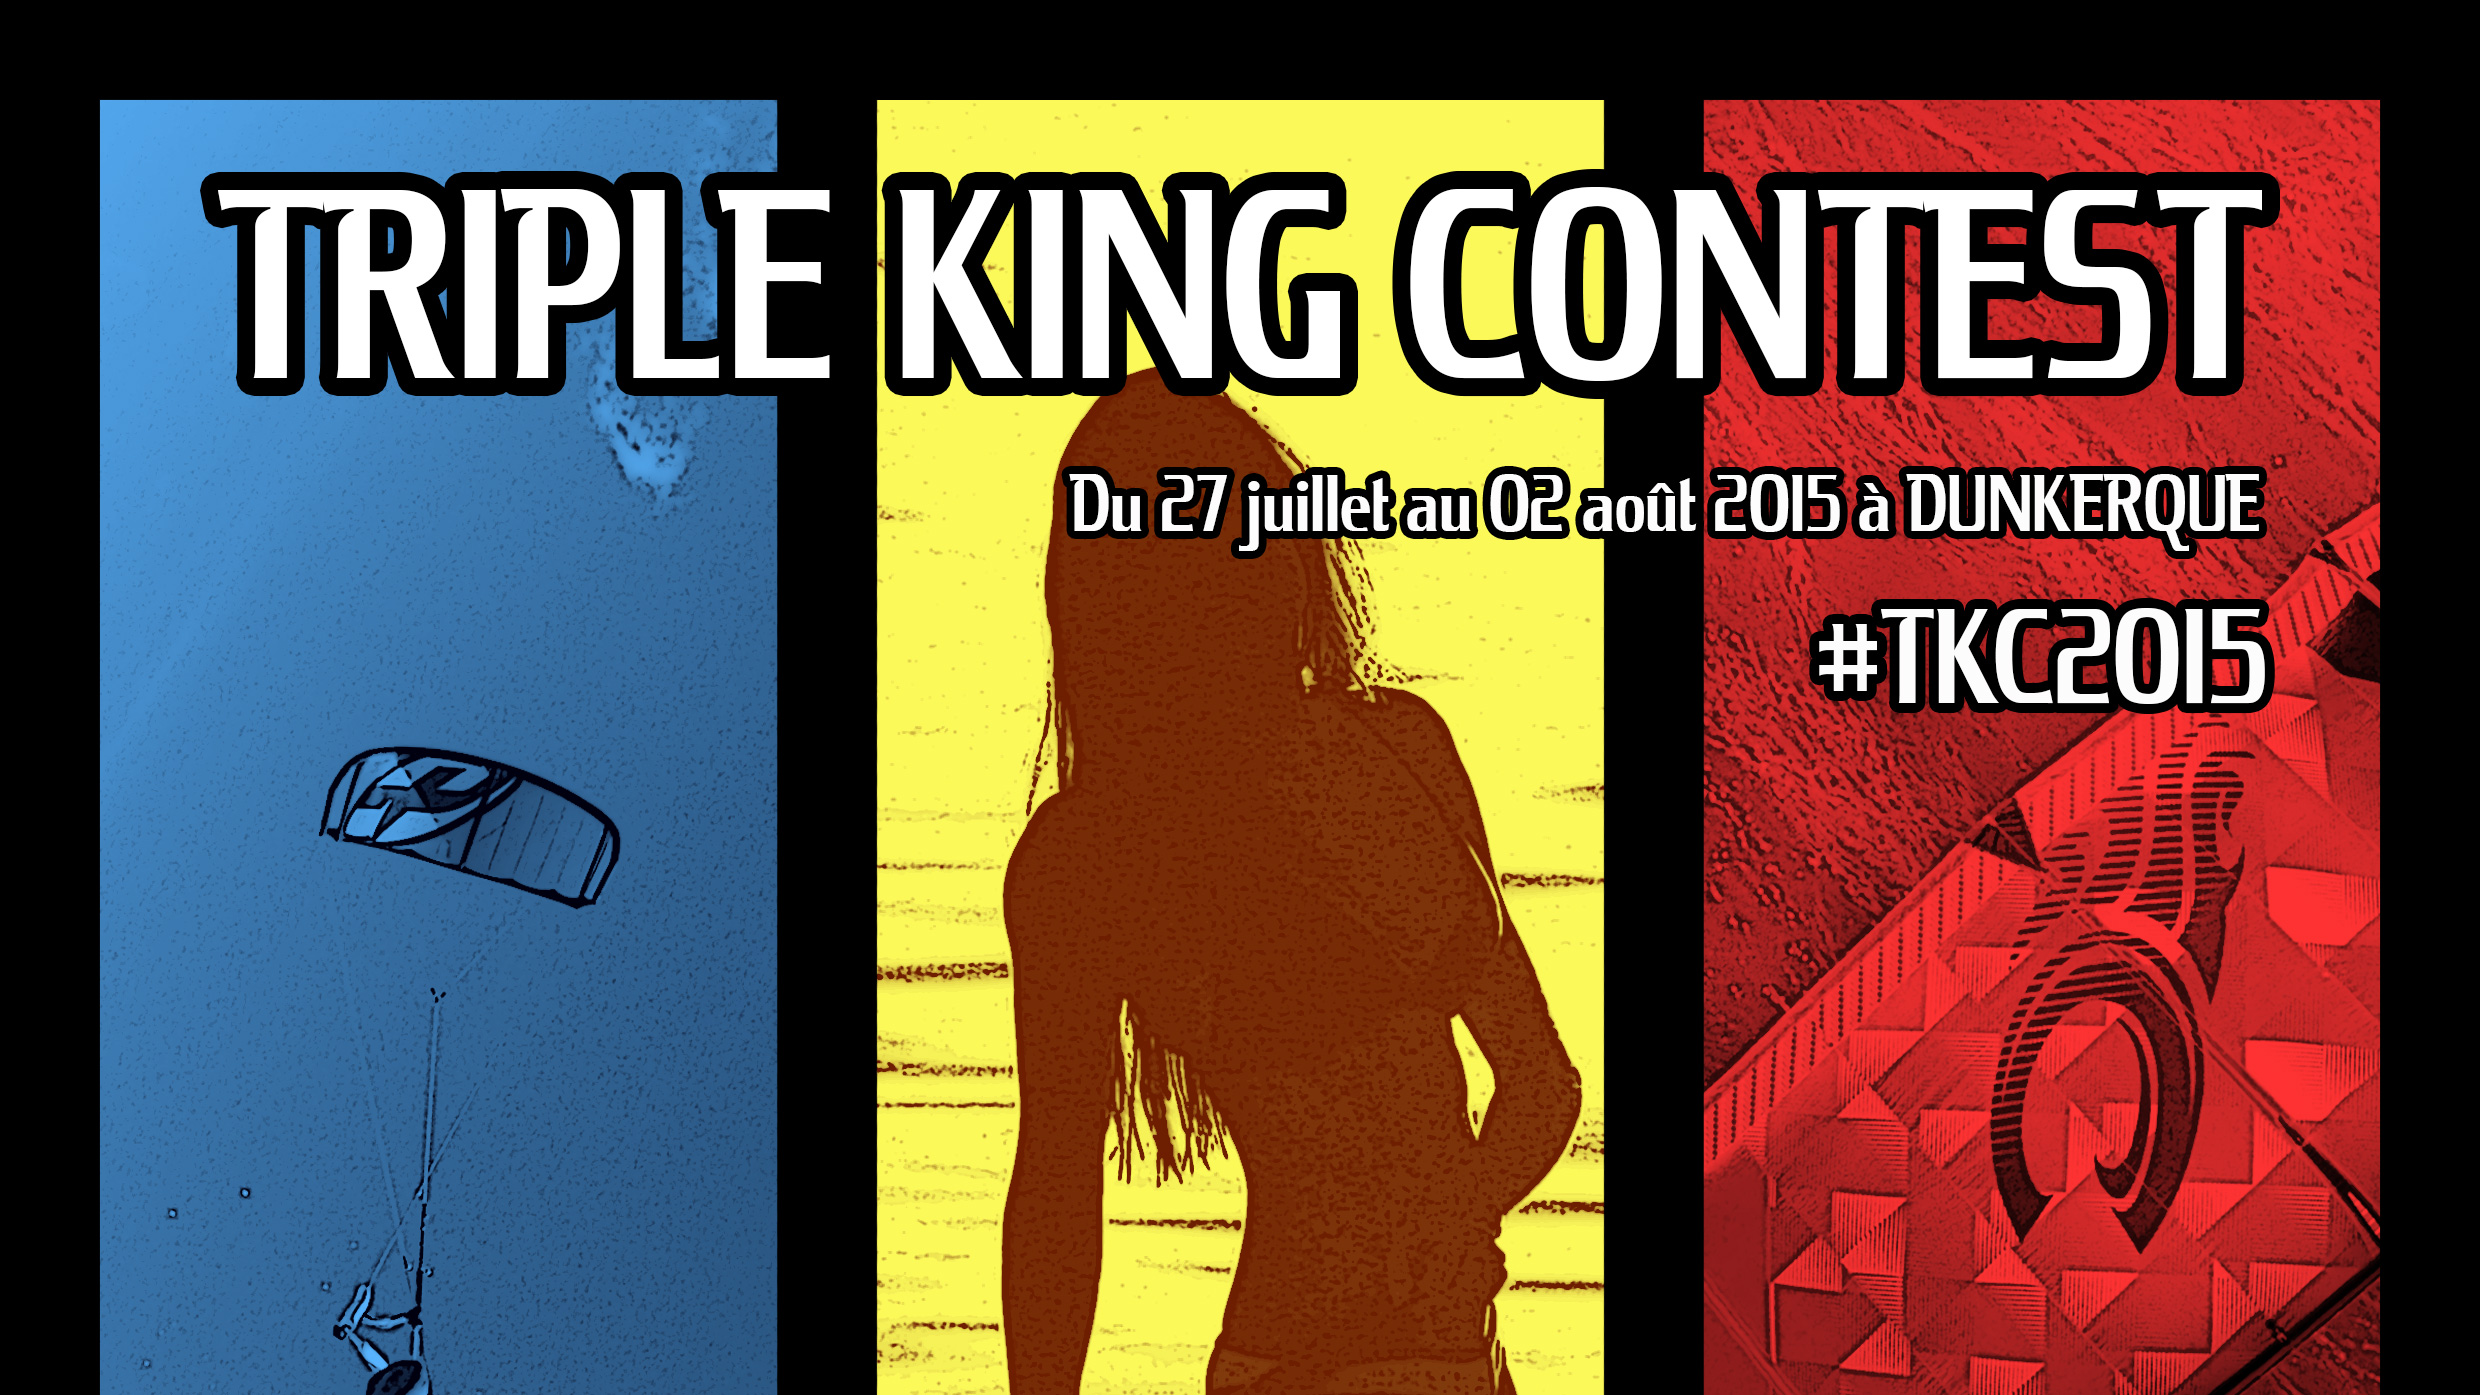 TRIPLE KING CONTEST 2015